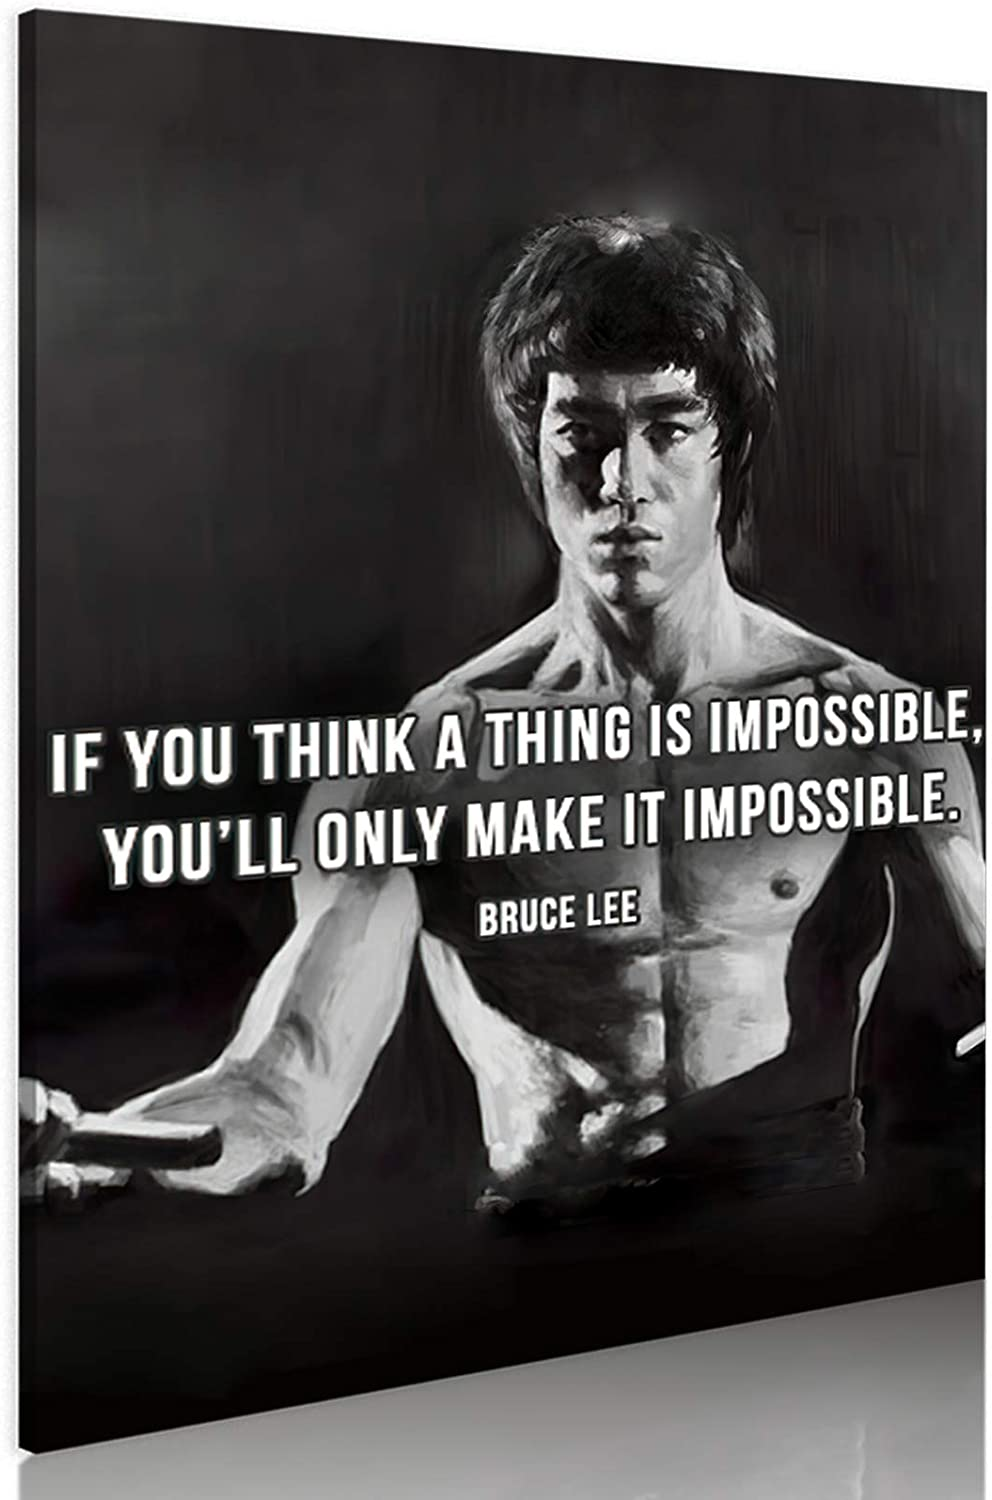 Bruce Lee Inspirational Canvas 1 year warranty Wall Fu Credence Classic Art Portrai Kung